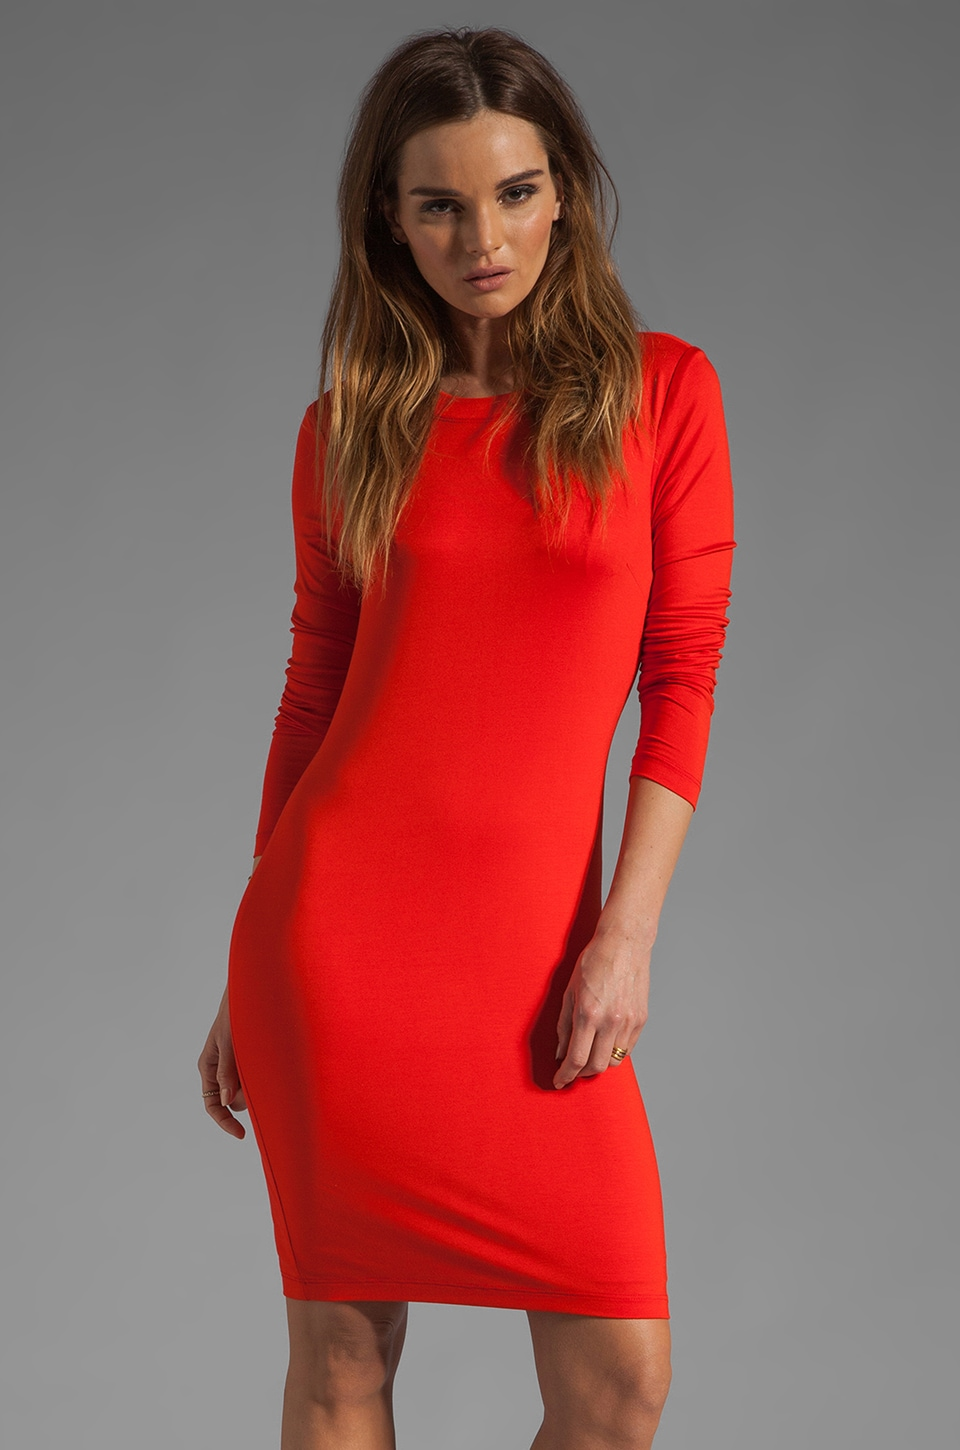 Trina Turk Bellingham Dress in Rally Red